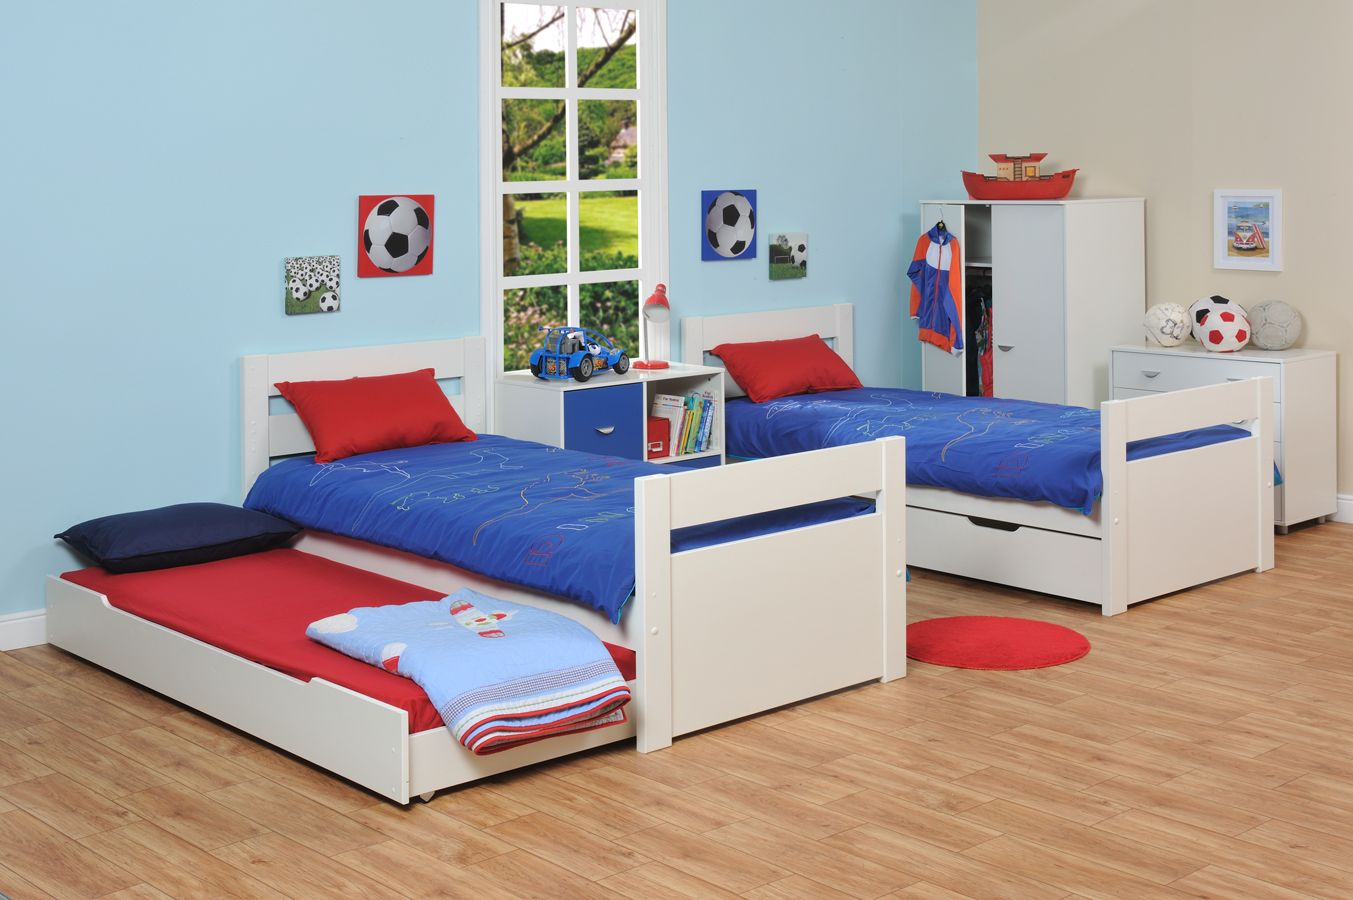 Kids room design for two kids - Room